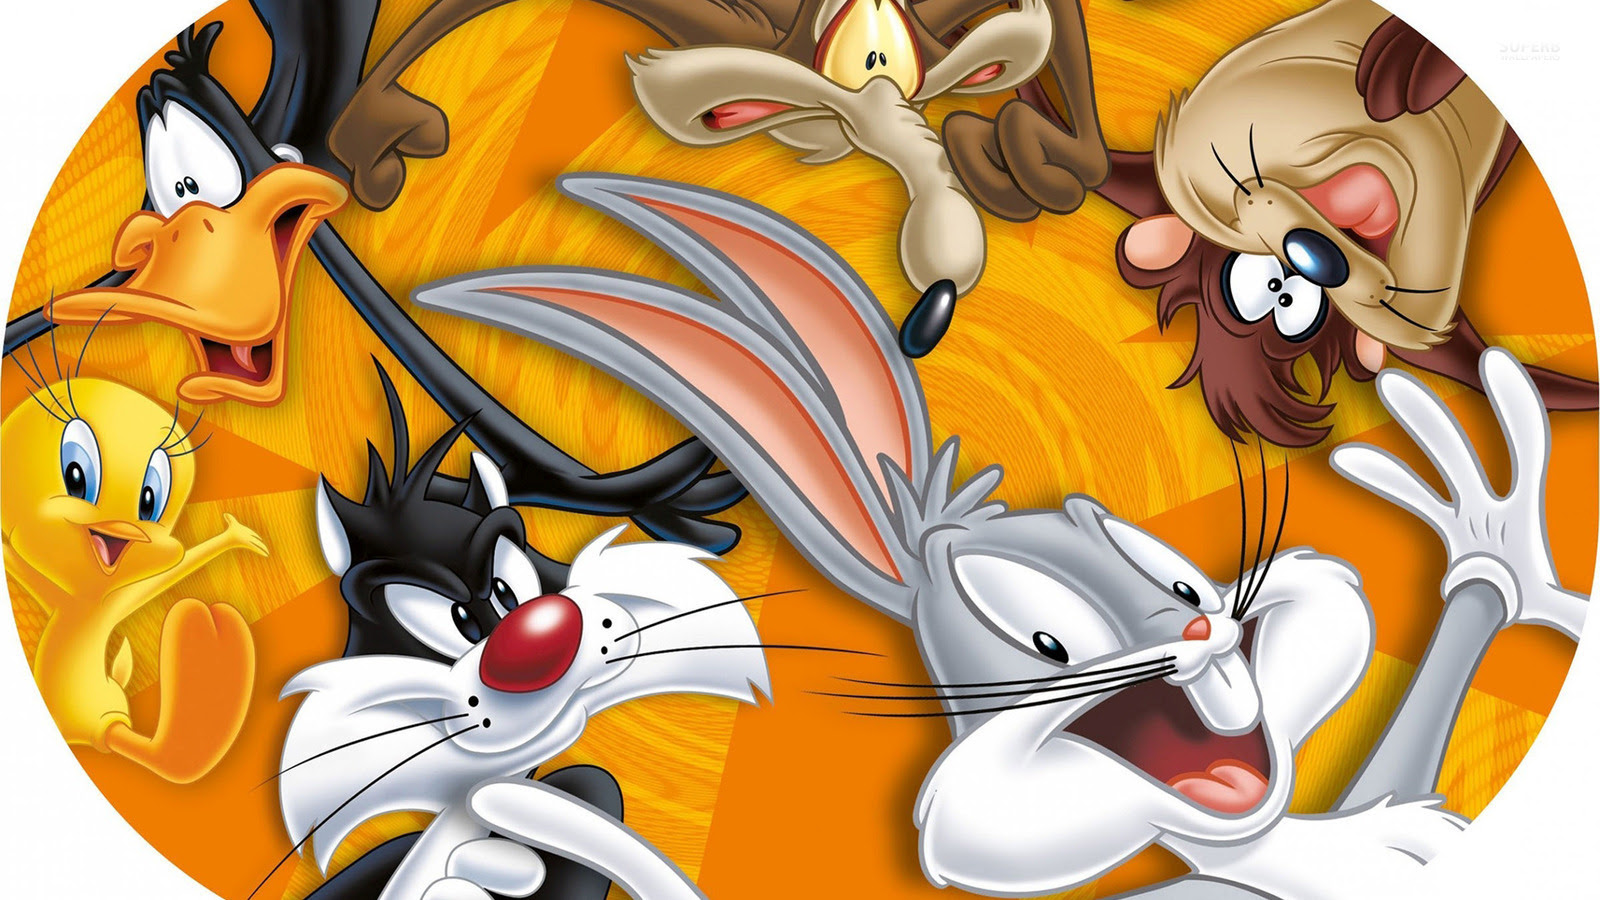 Looney Tunes The Looney Tunes Show Wallpaper 38681633 Fanpop